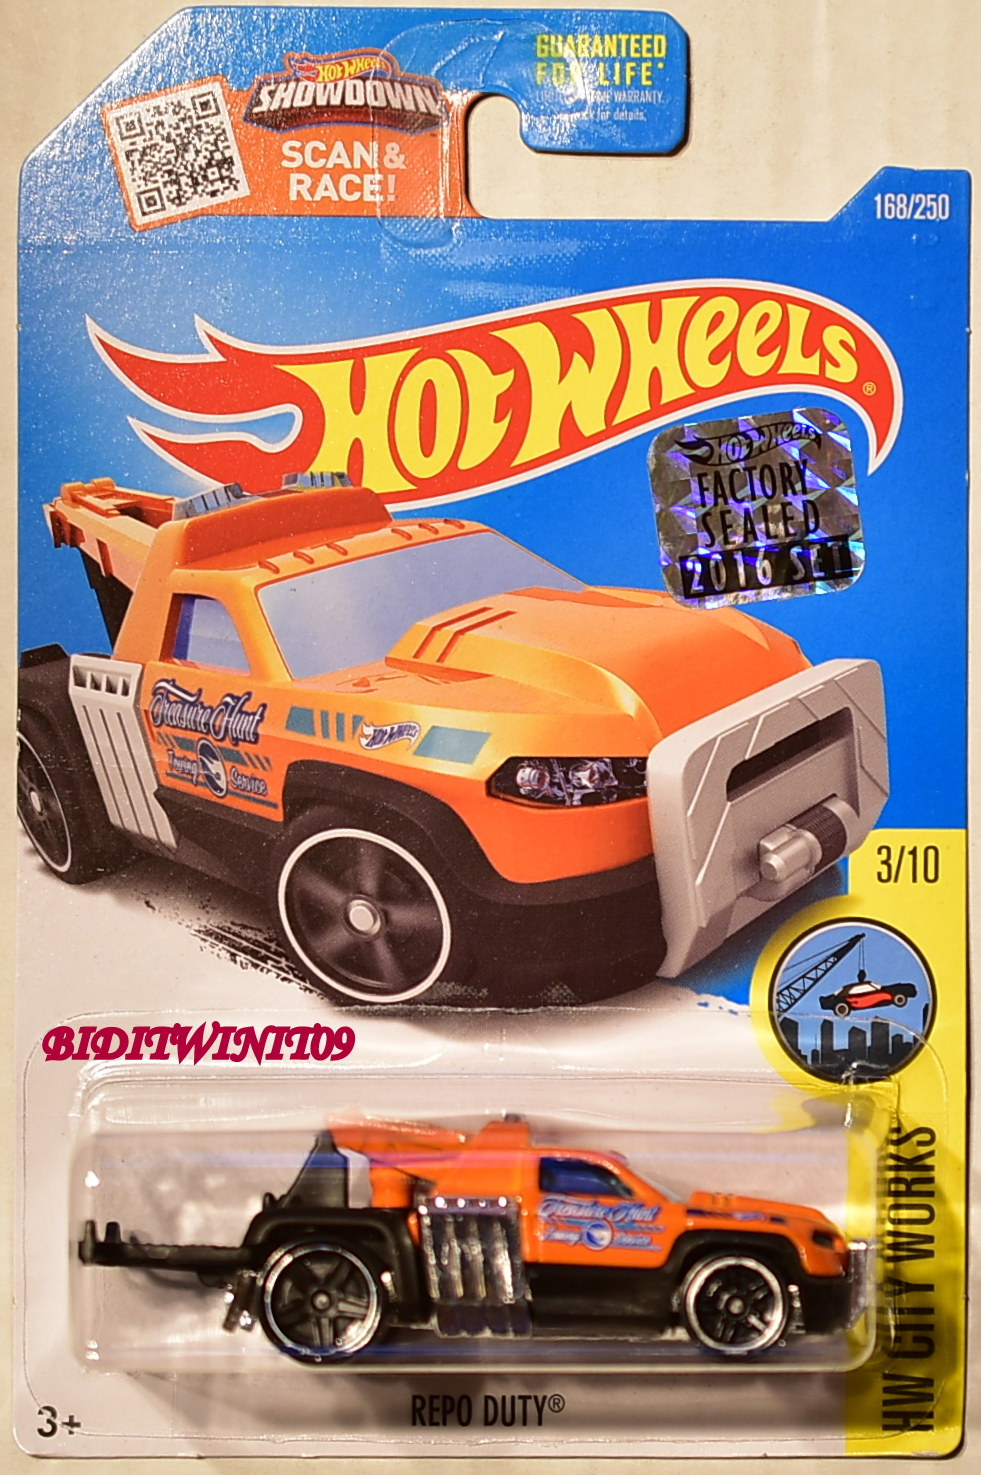 HOT WHEELS 2016 HW CITY WORKS REPO DUTY #3/10 ORANGE FACTORY SEALED